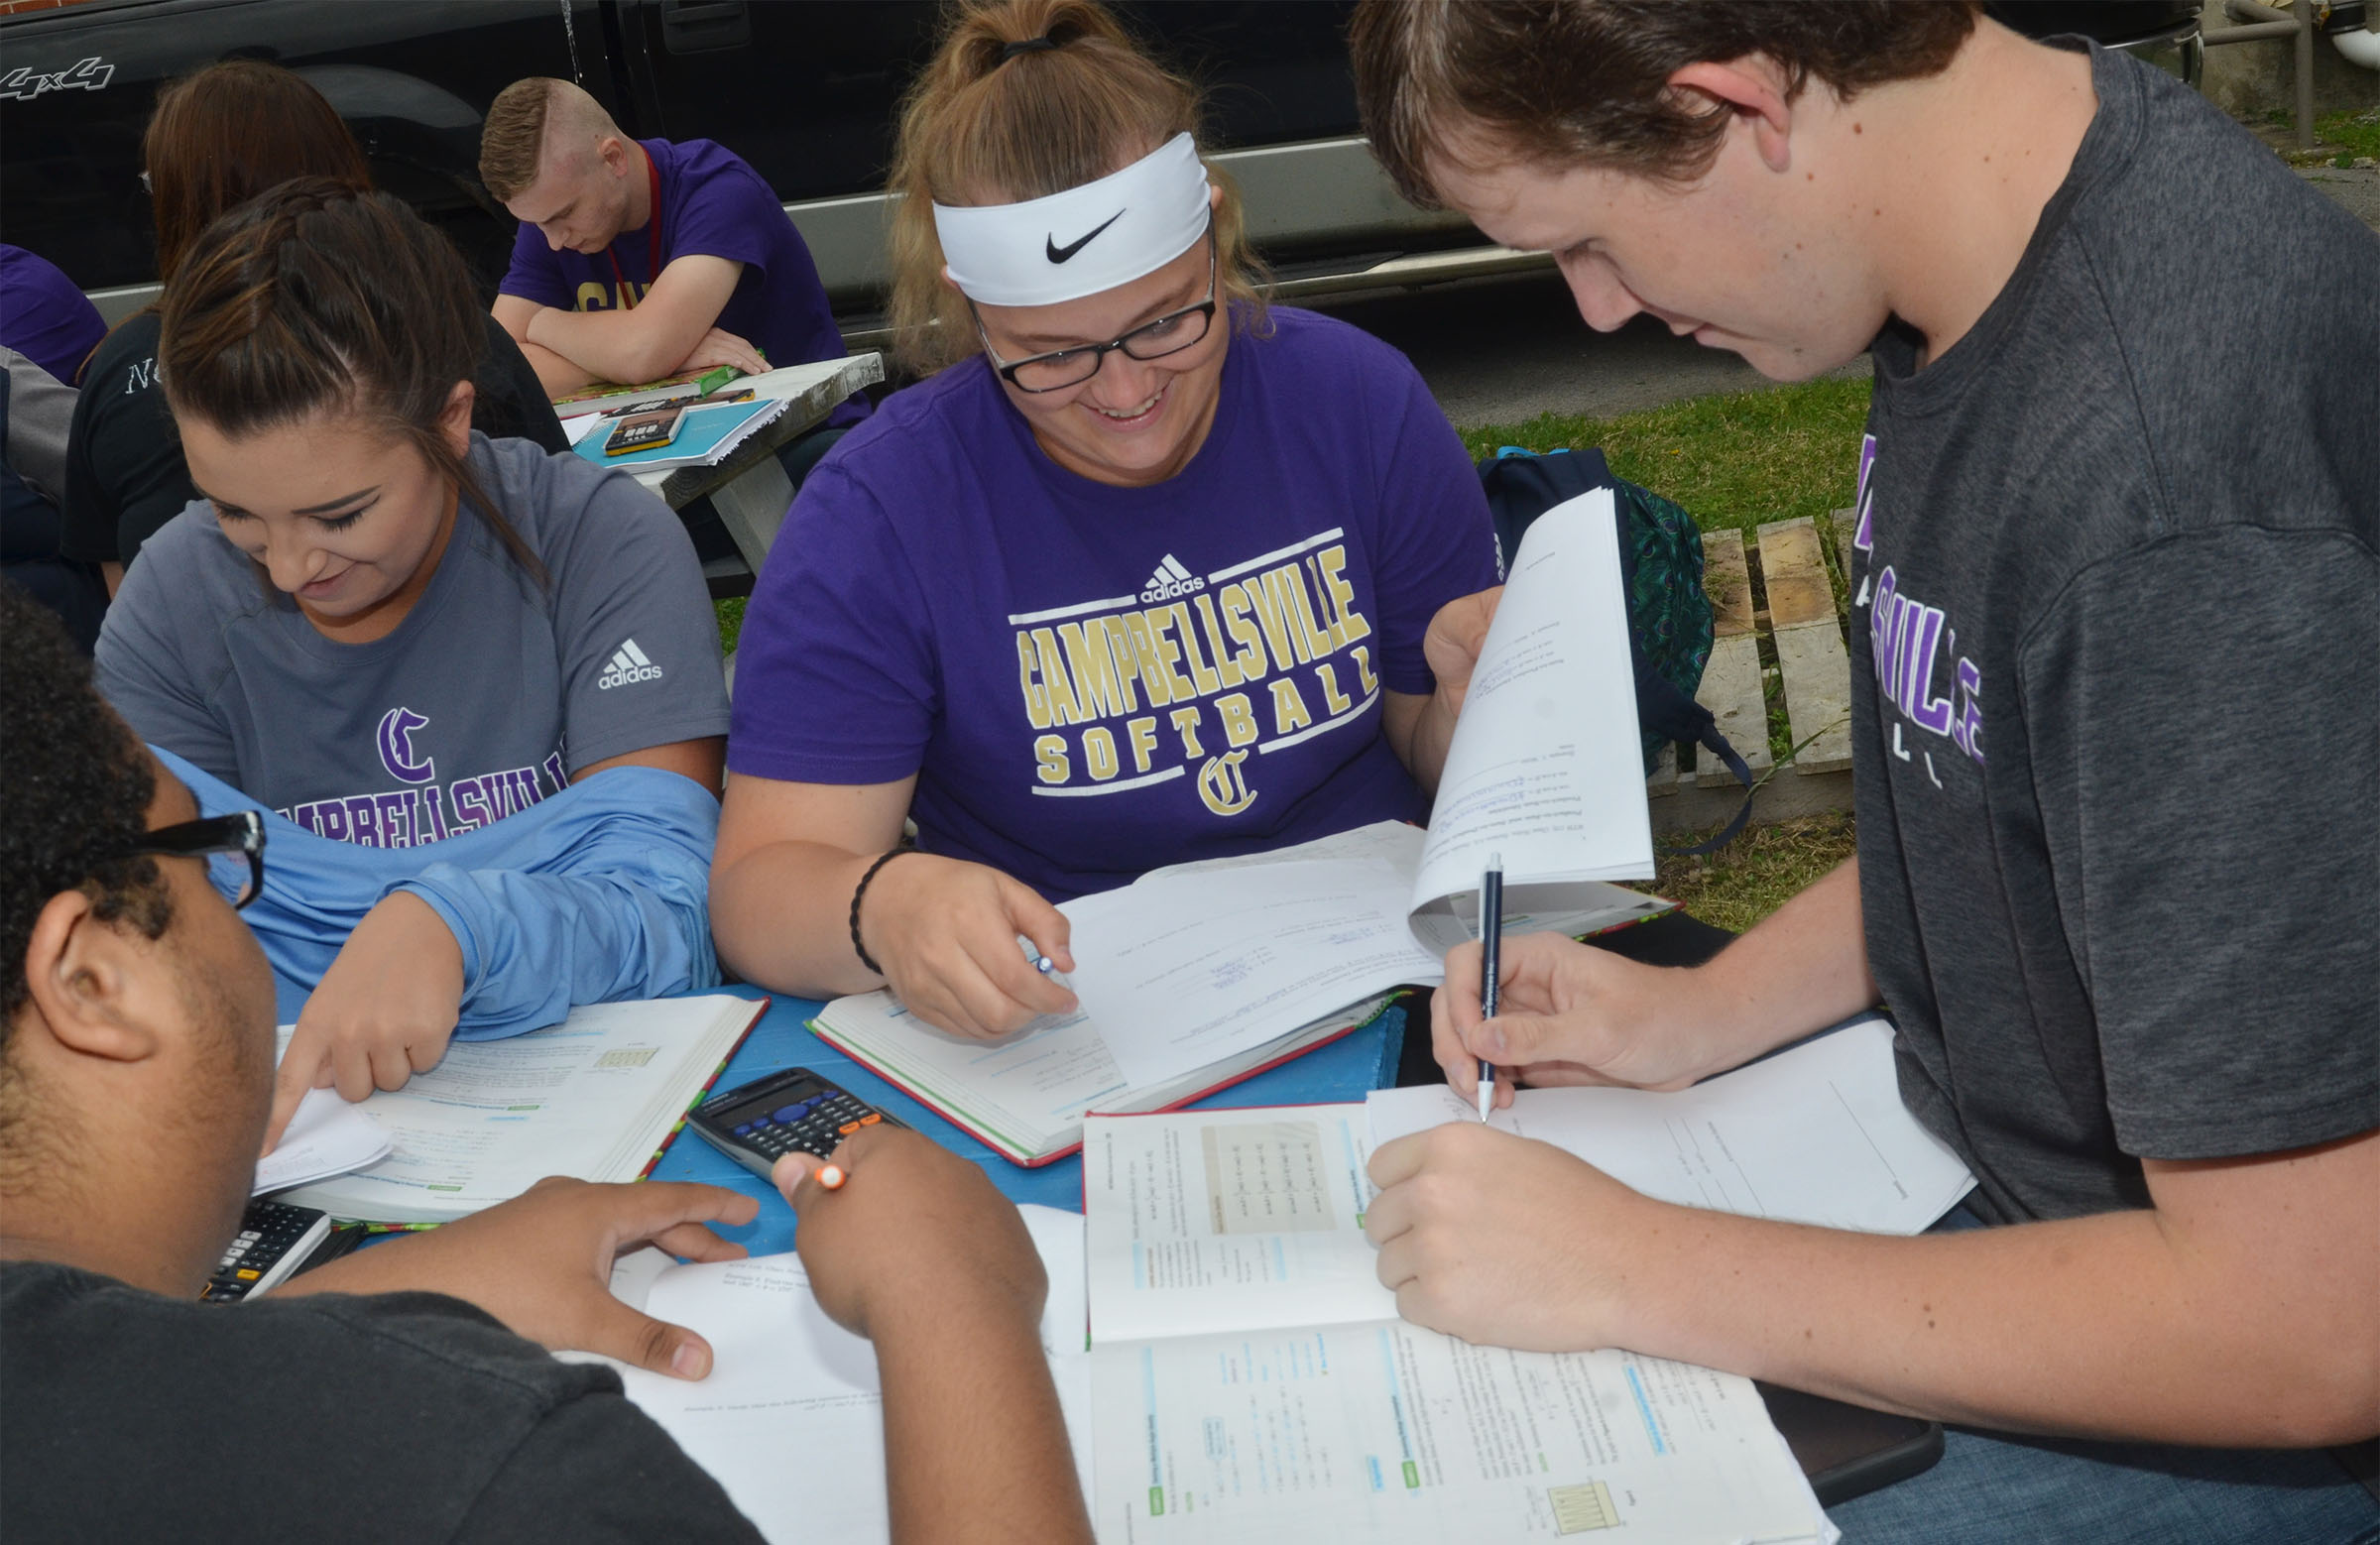 CHS seniors, from left, Kailey Morris, Brenna Wethington and Jared Brewster, and, in front, Ricky Smith-Cecil, work on their homework while having class outside.